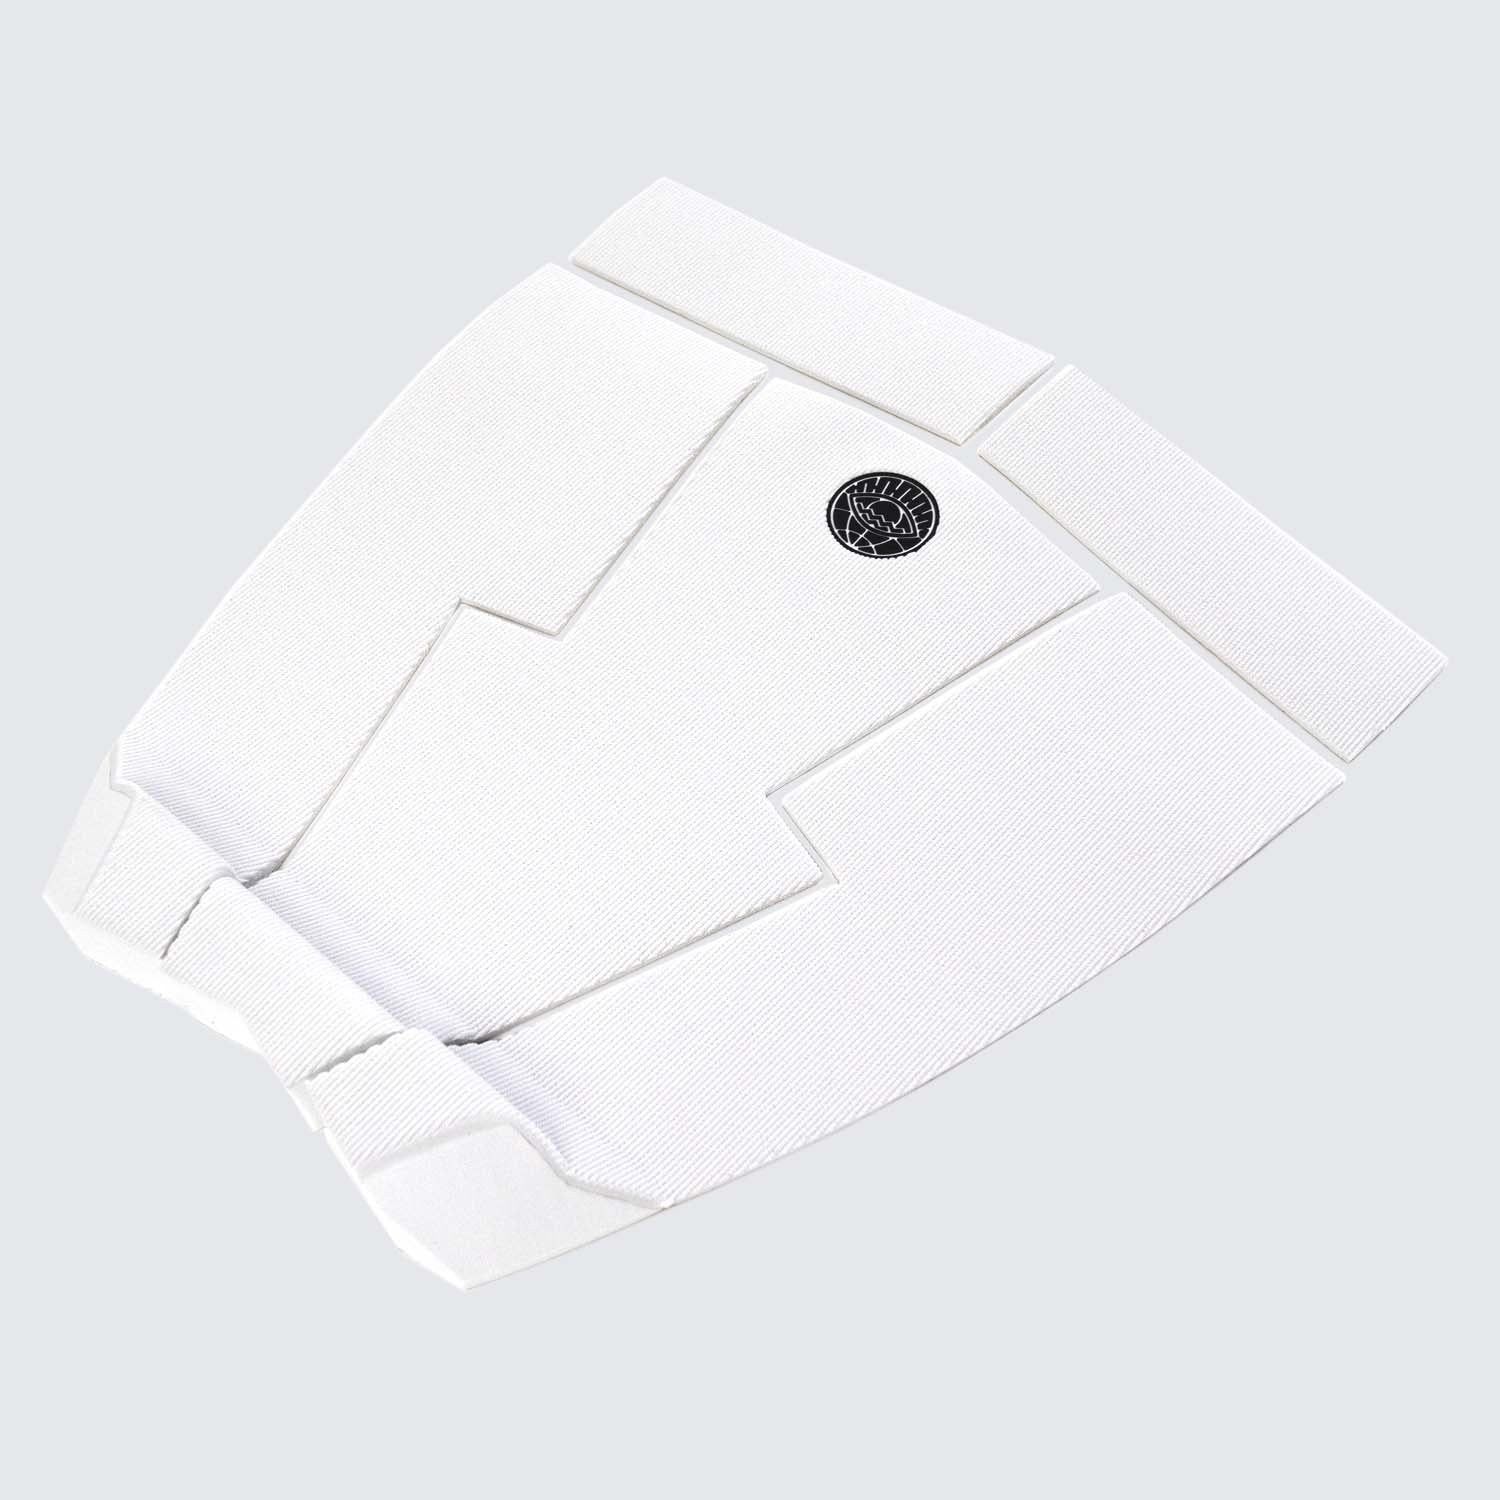 CORE SURF TAIL PAD BLANC II RECYCLED - WAVEPATROL